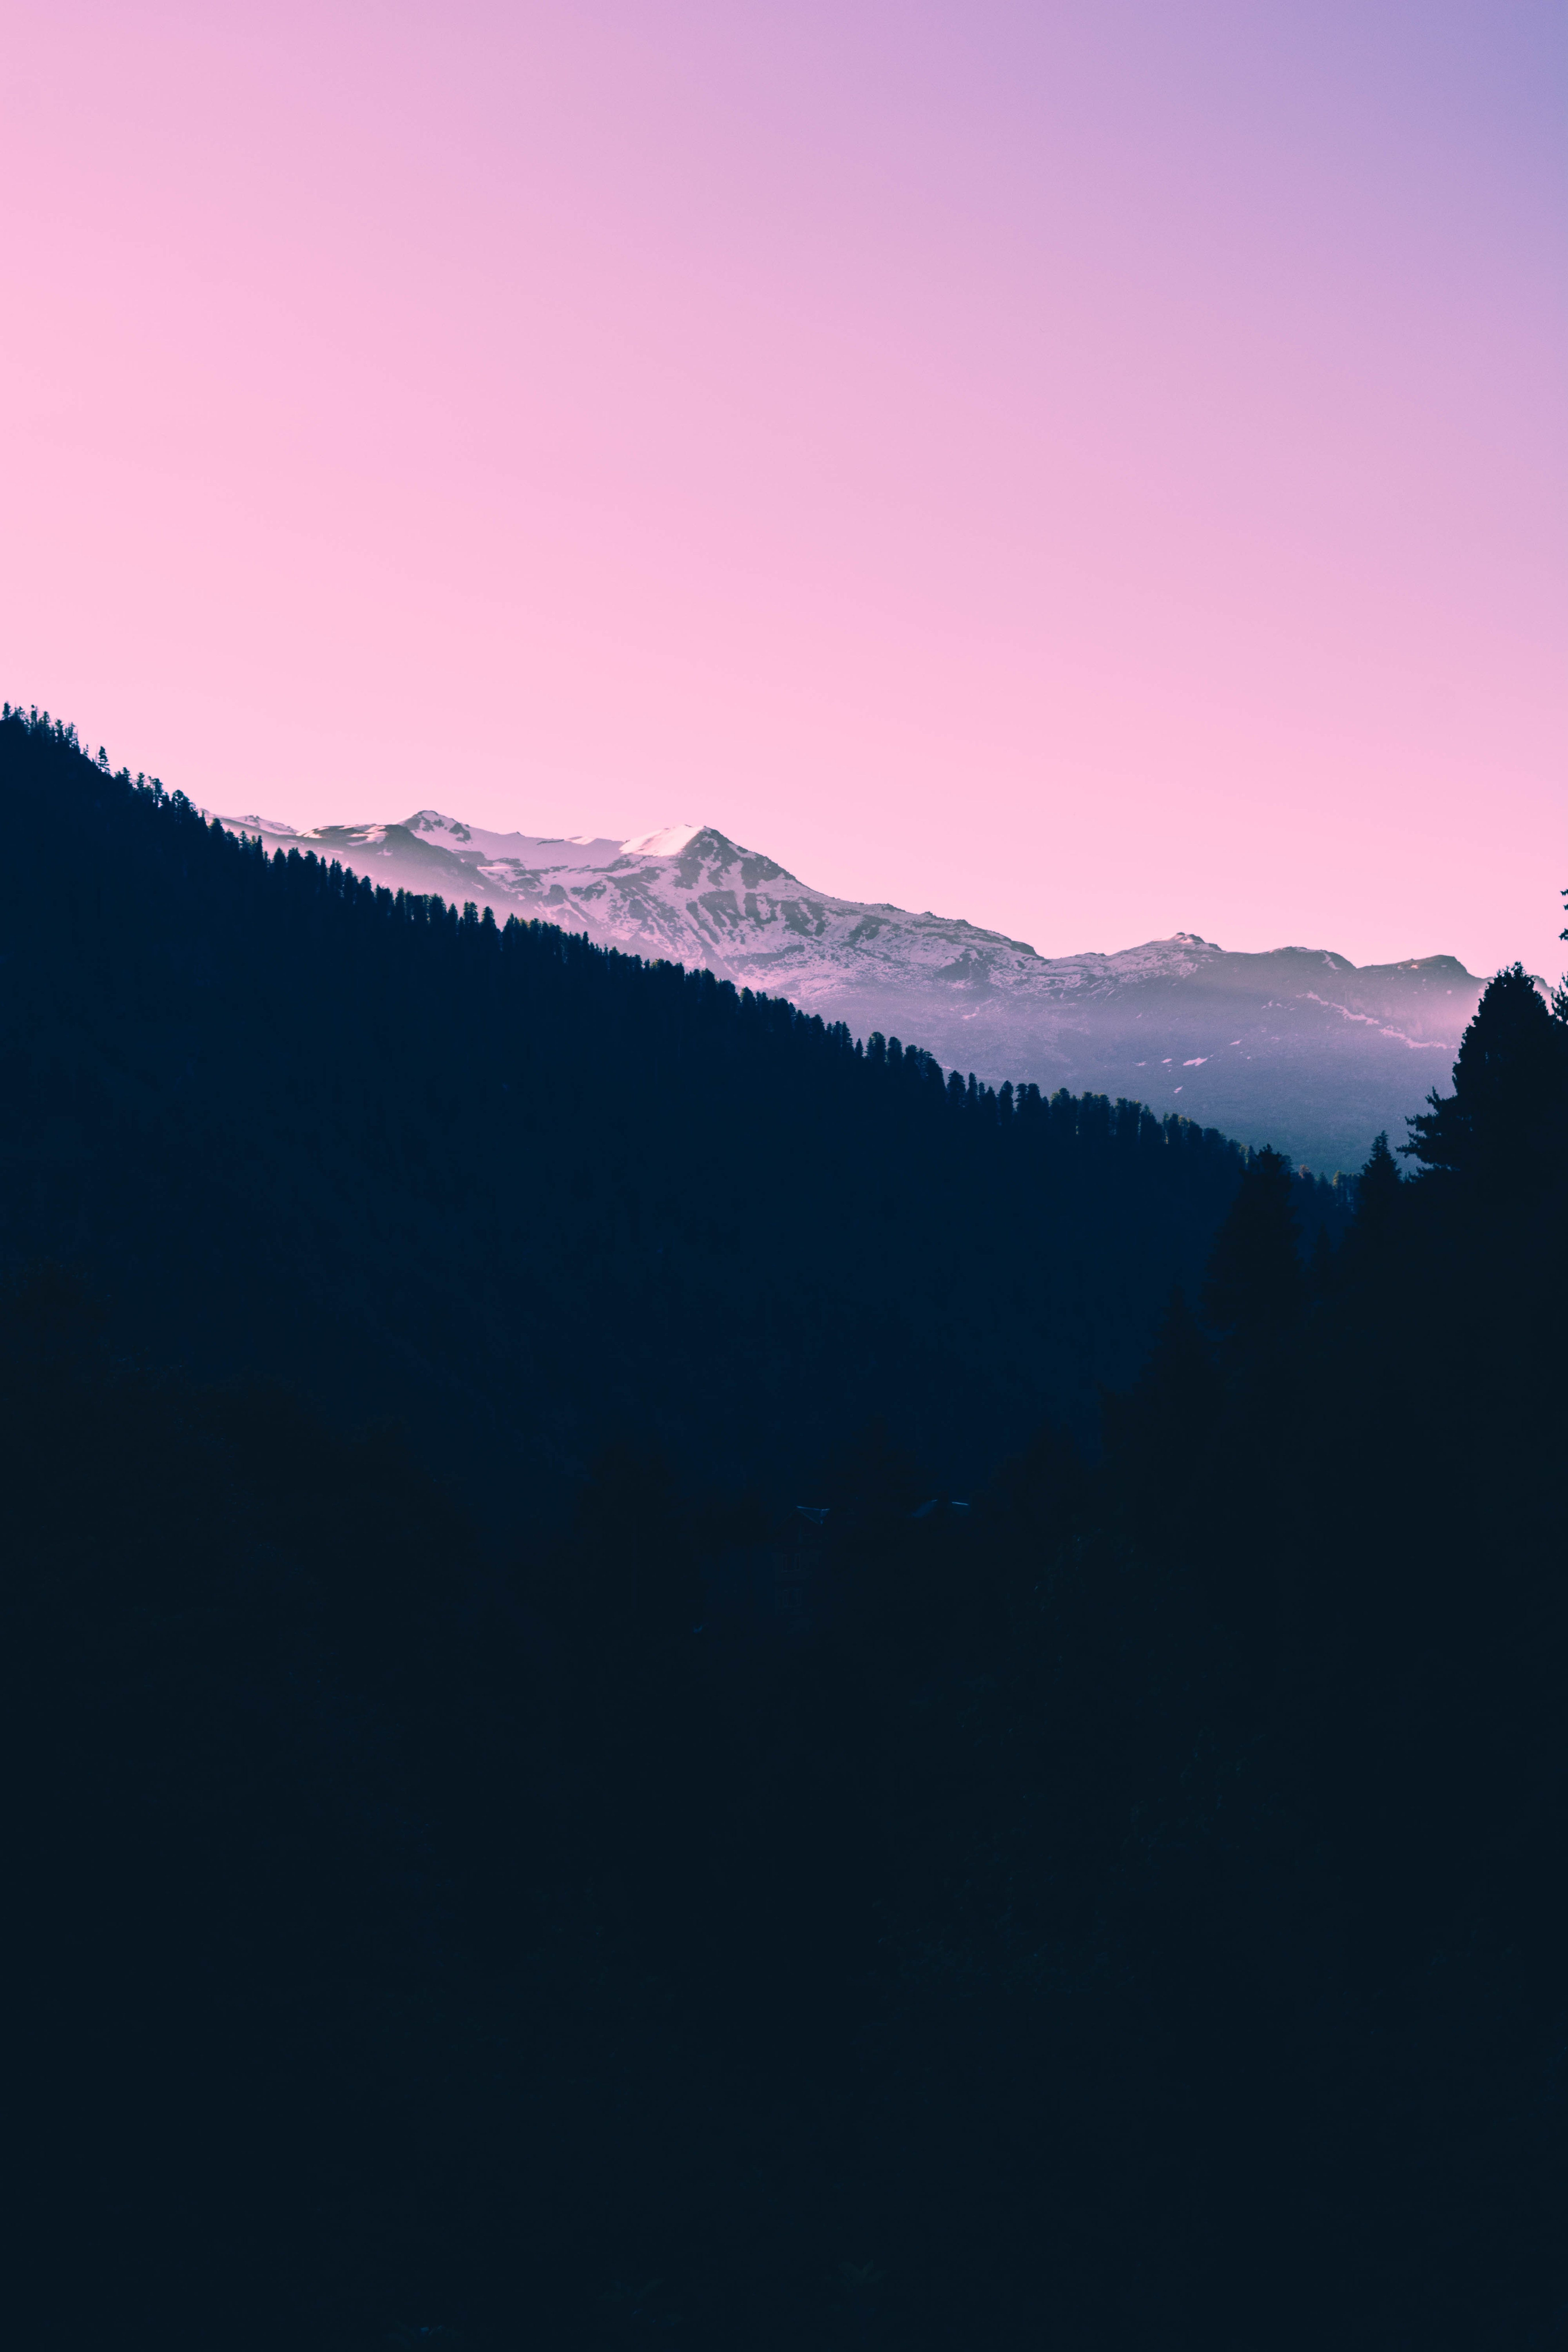 A Dark Sunset Over Snow Covered Mountains And A Pink Sky Tumblr